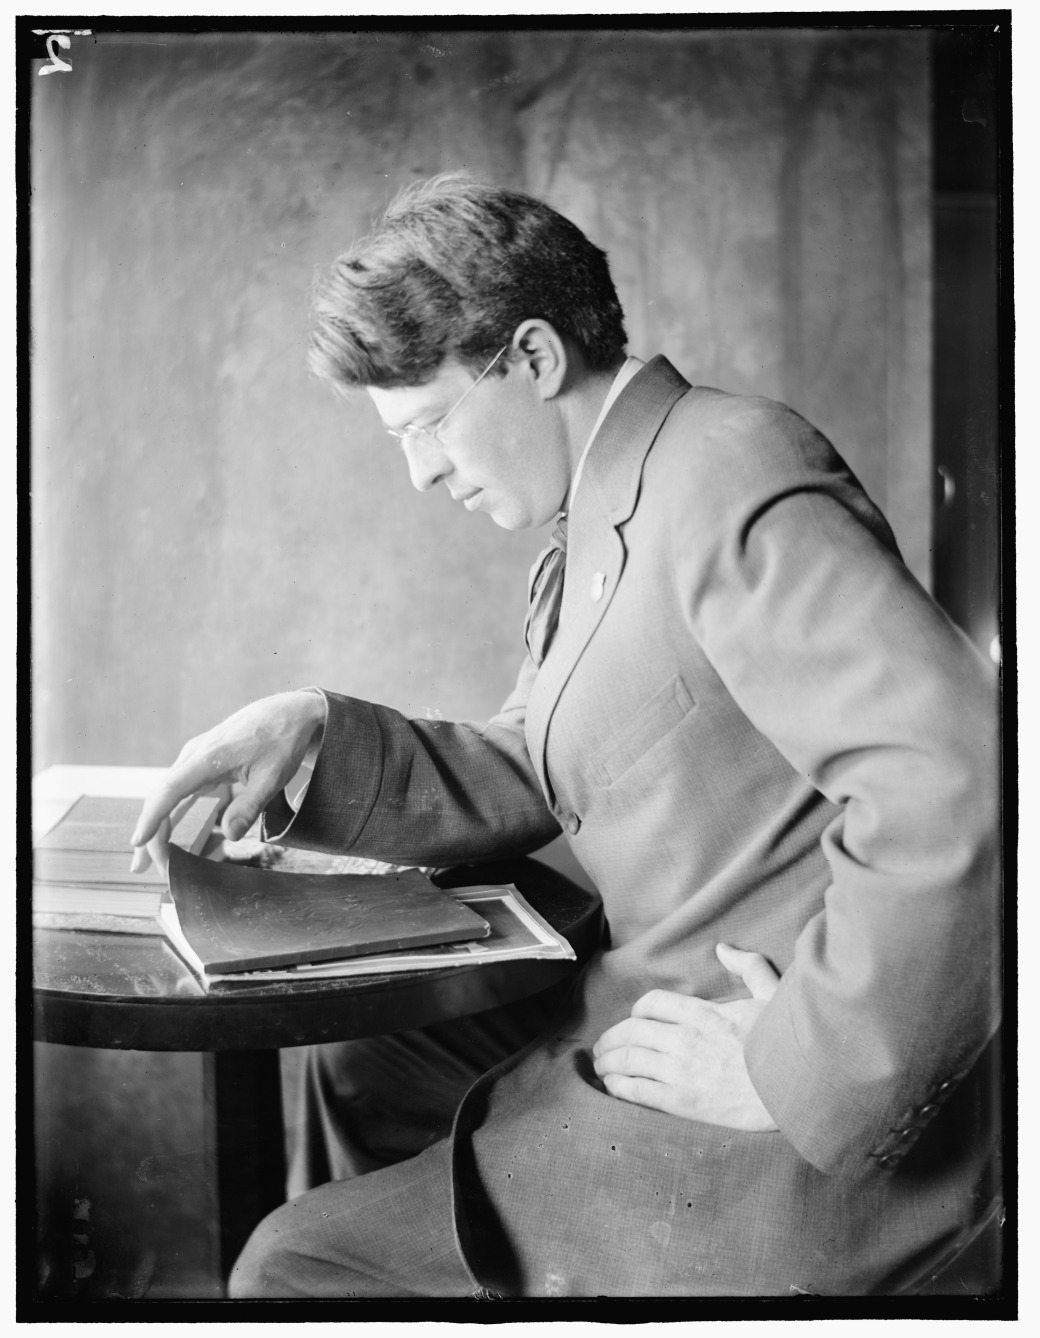 Clarence_White_Sr_by_Gertrude_Käsebier